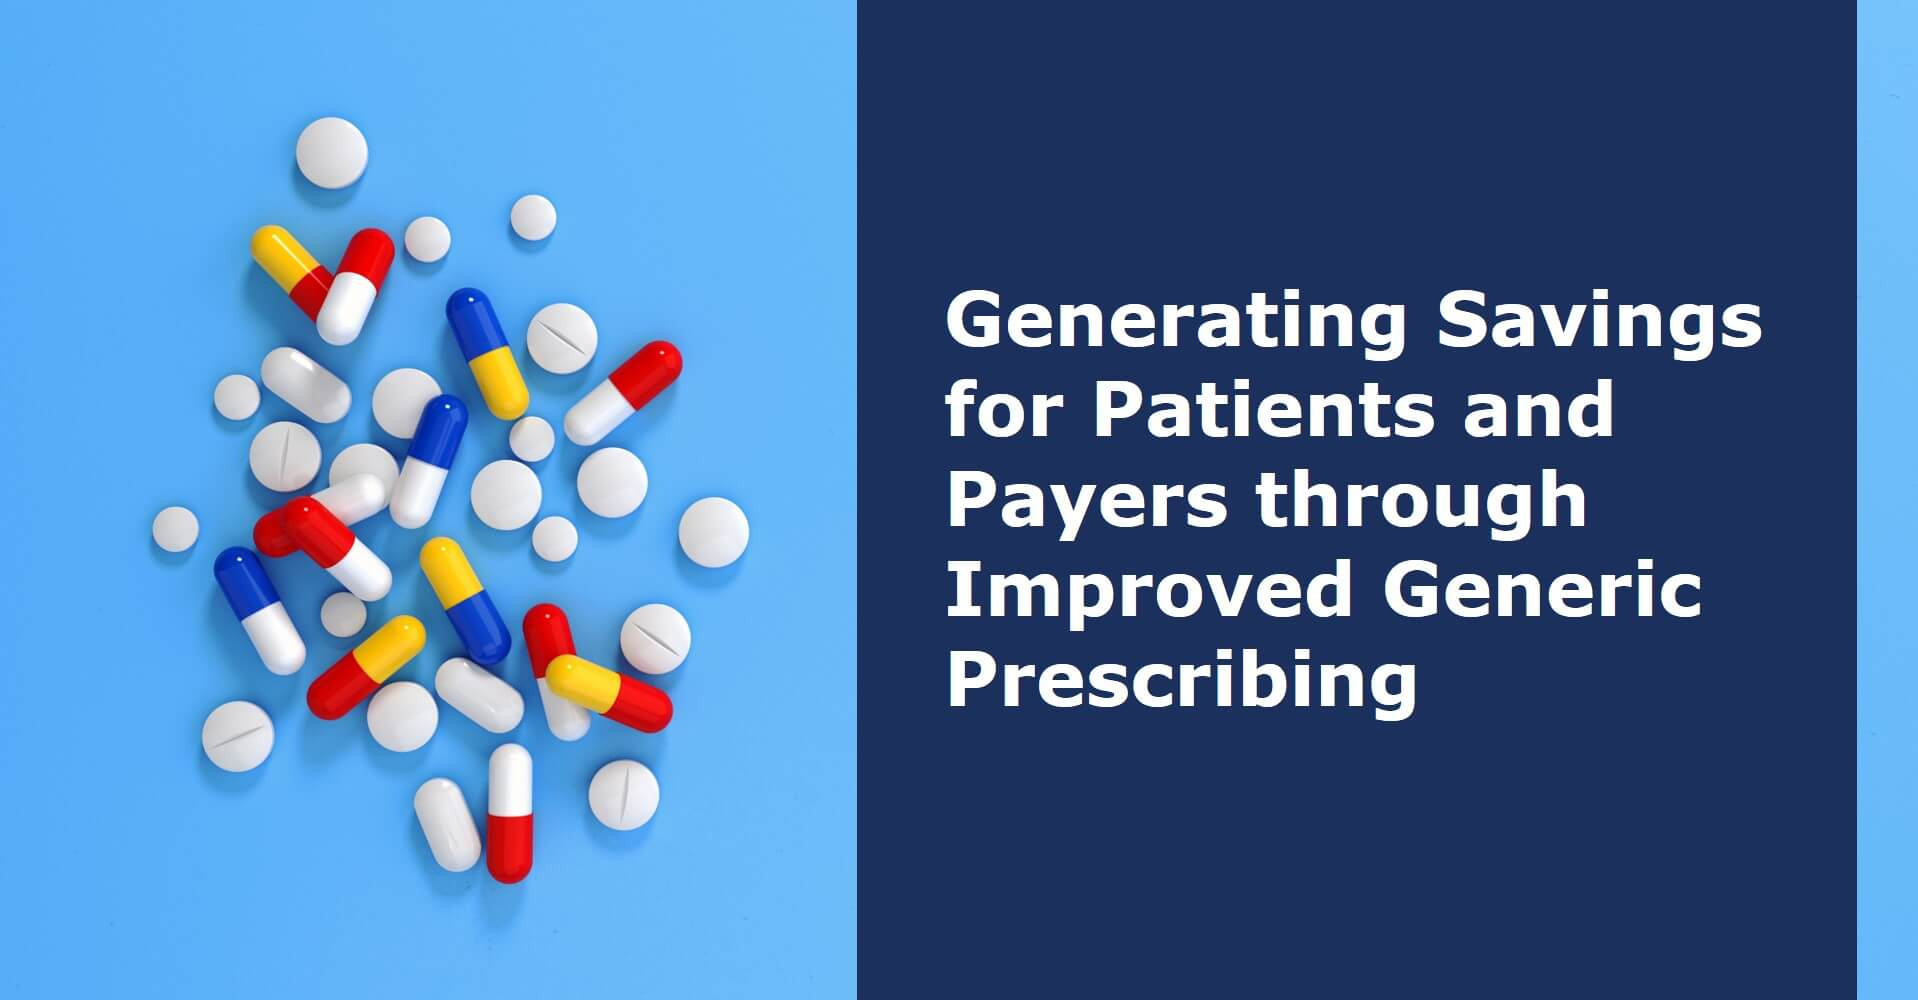 Generating Savings for Patients and Payers through Improved Generic Prescribing.jpg